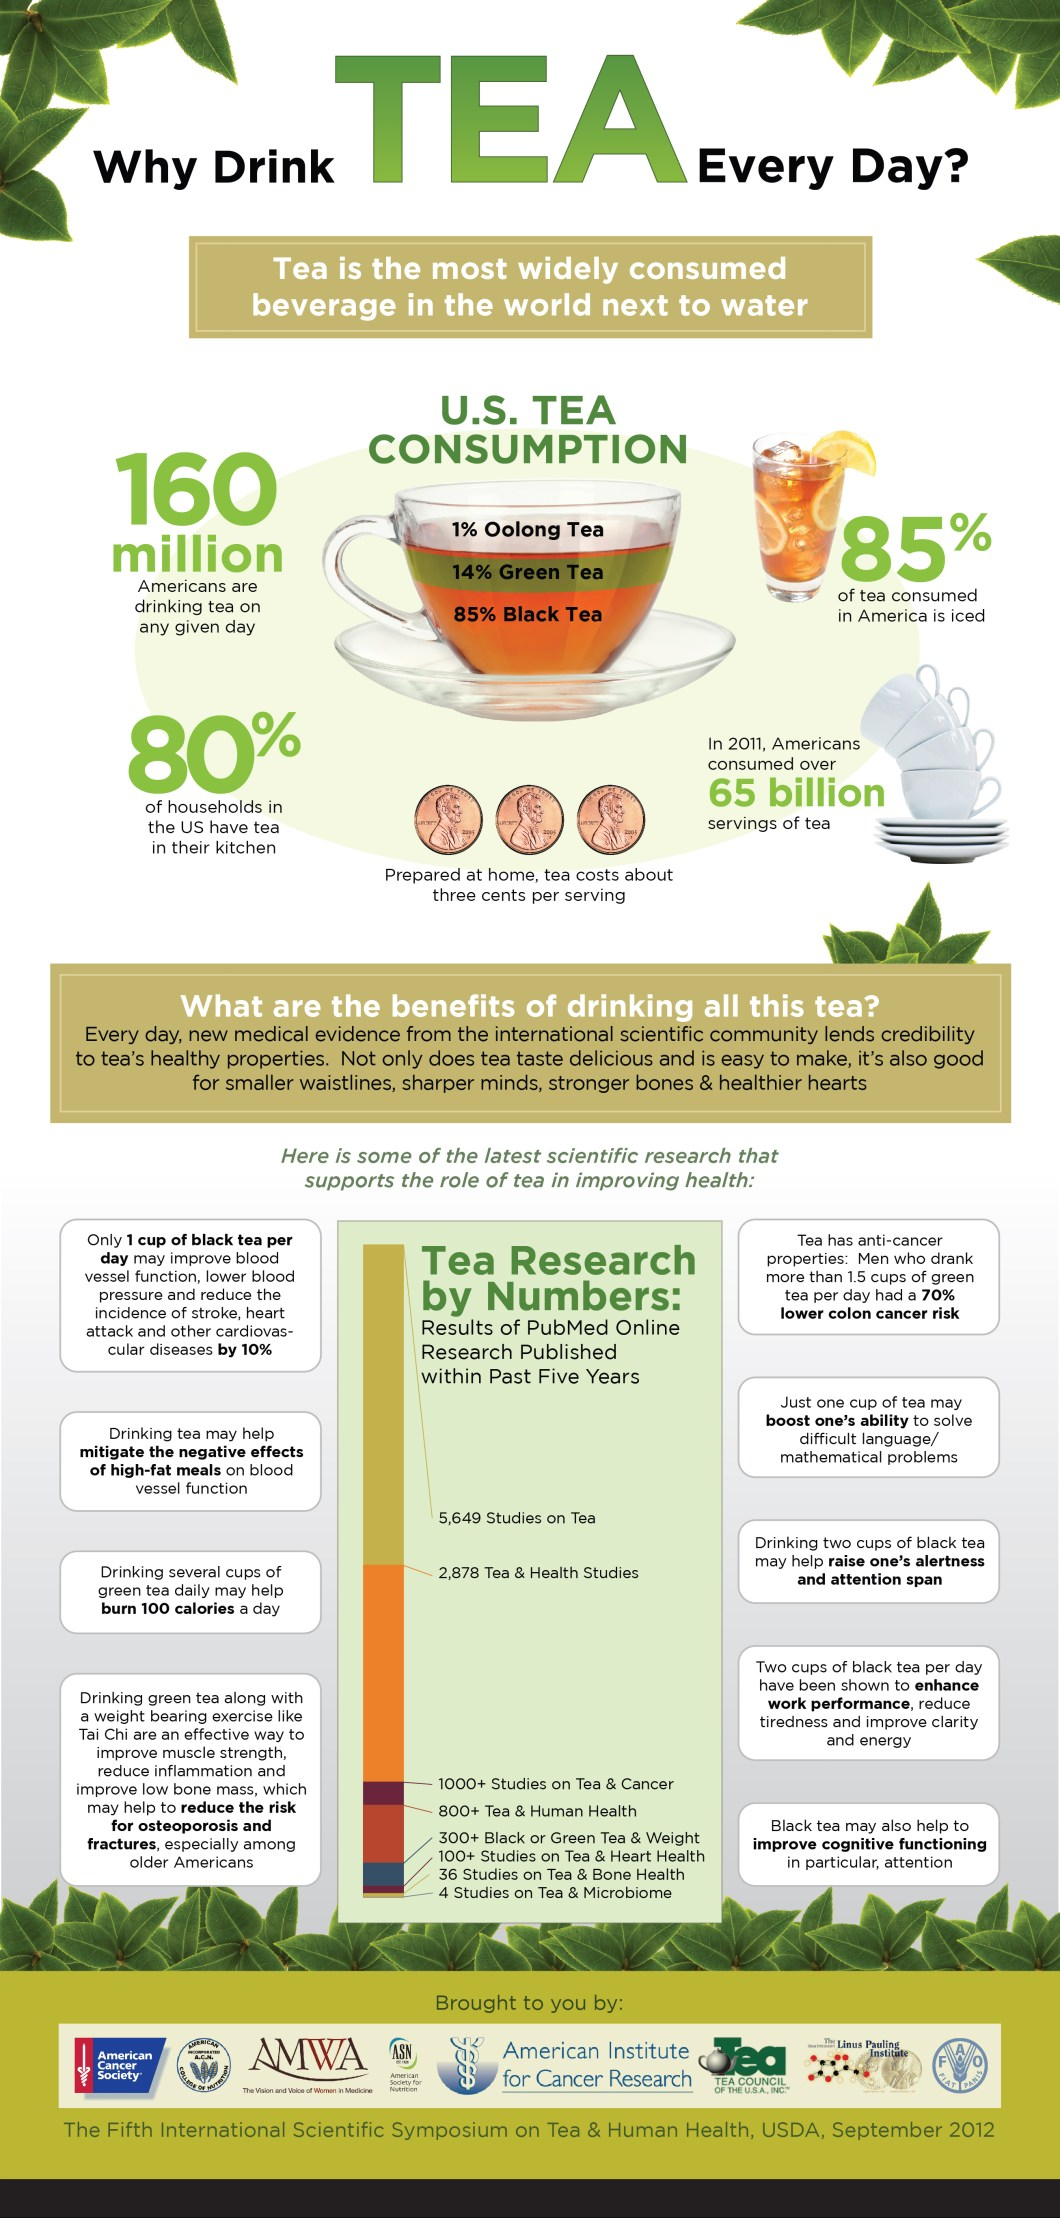 Here's Why You Must Drink Tea Everyday! - Infographic